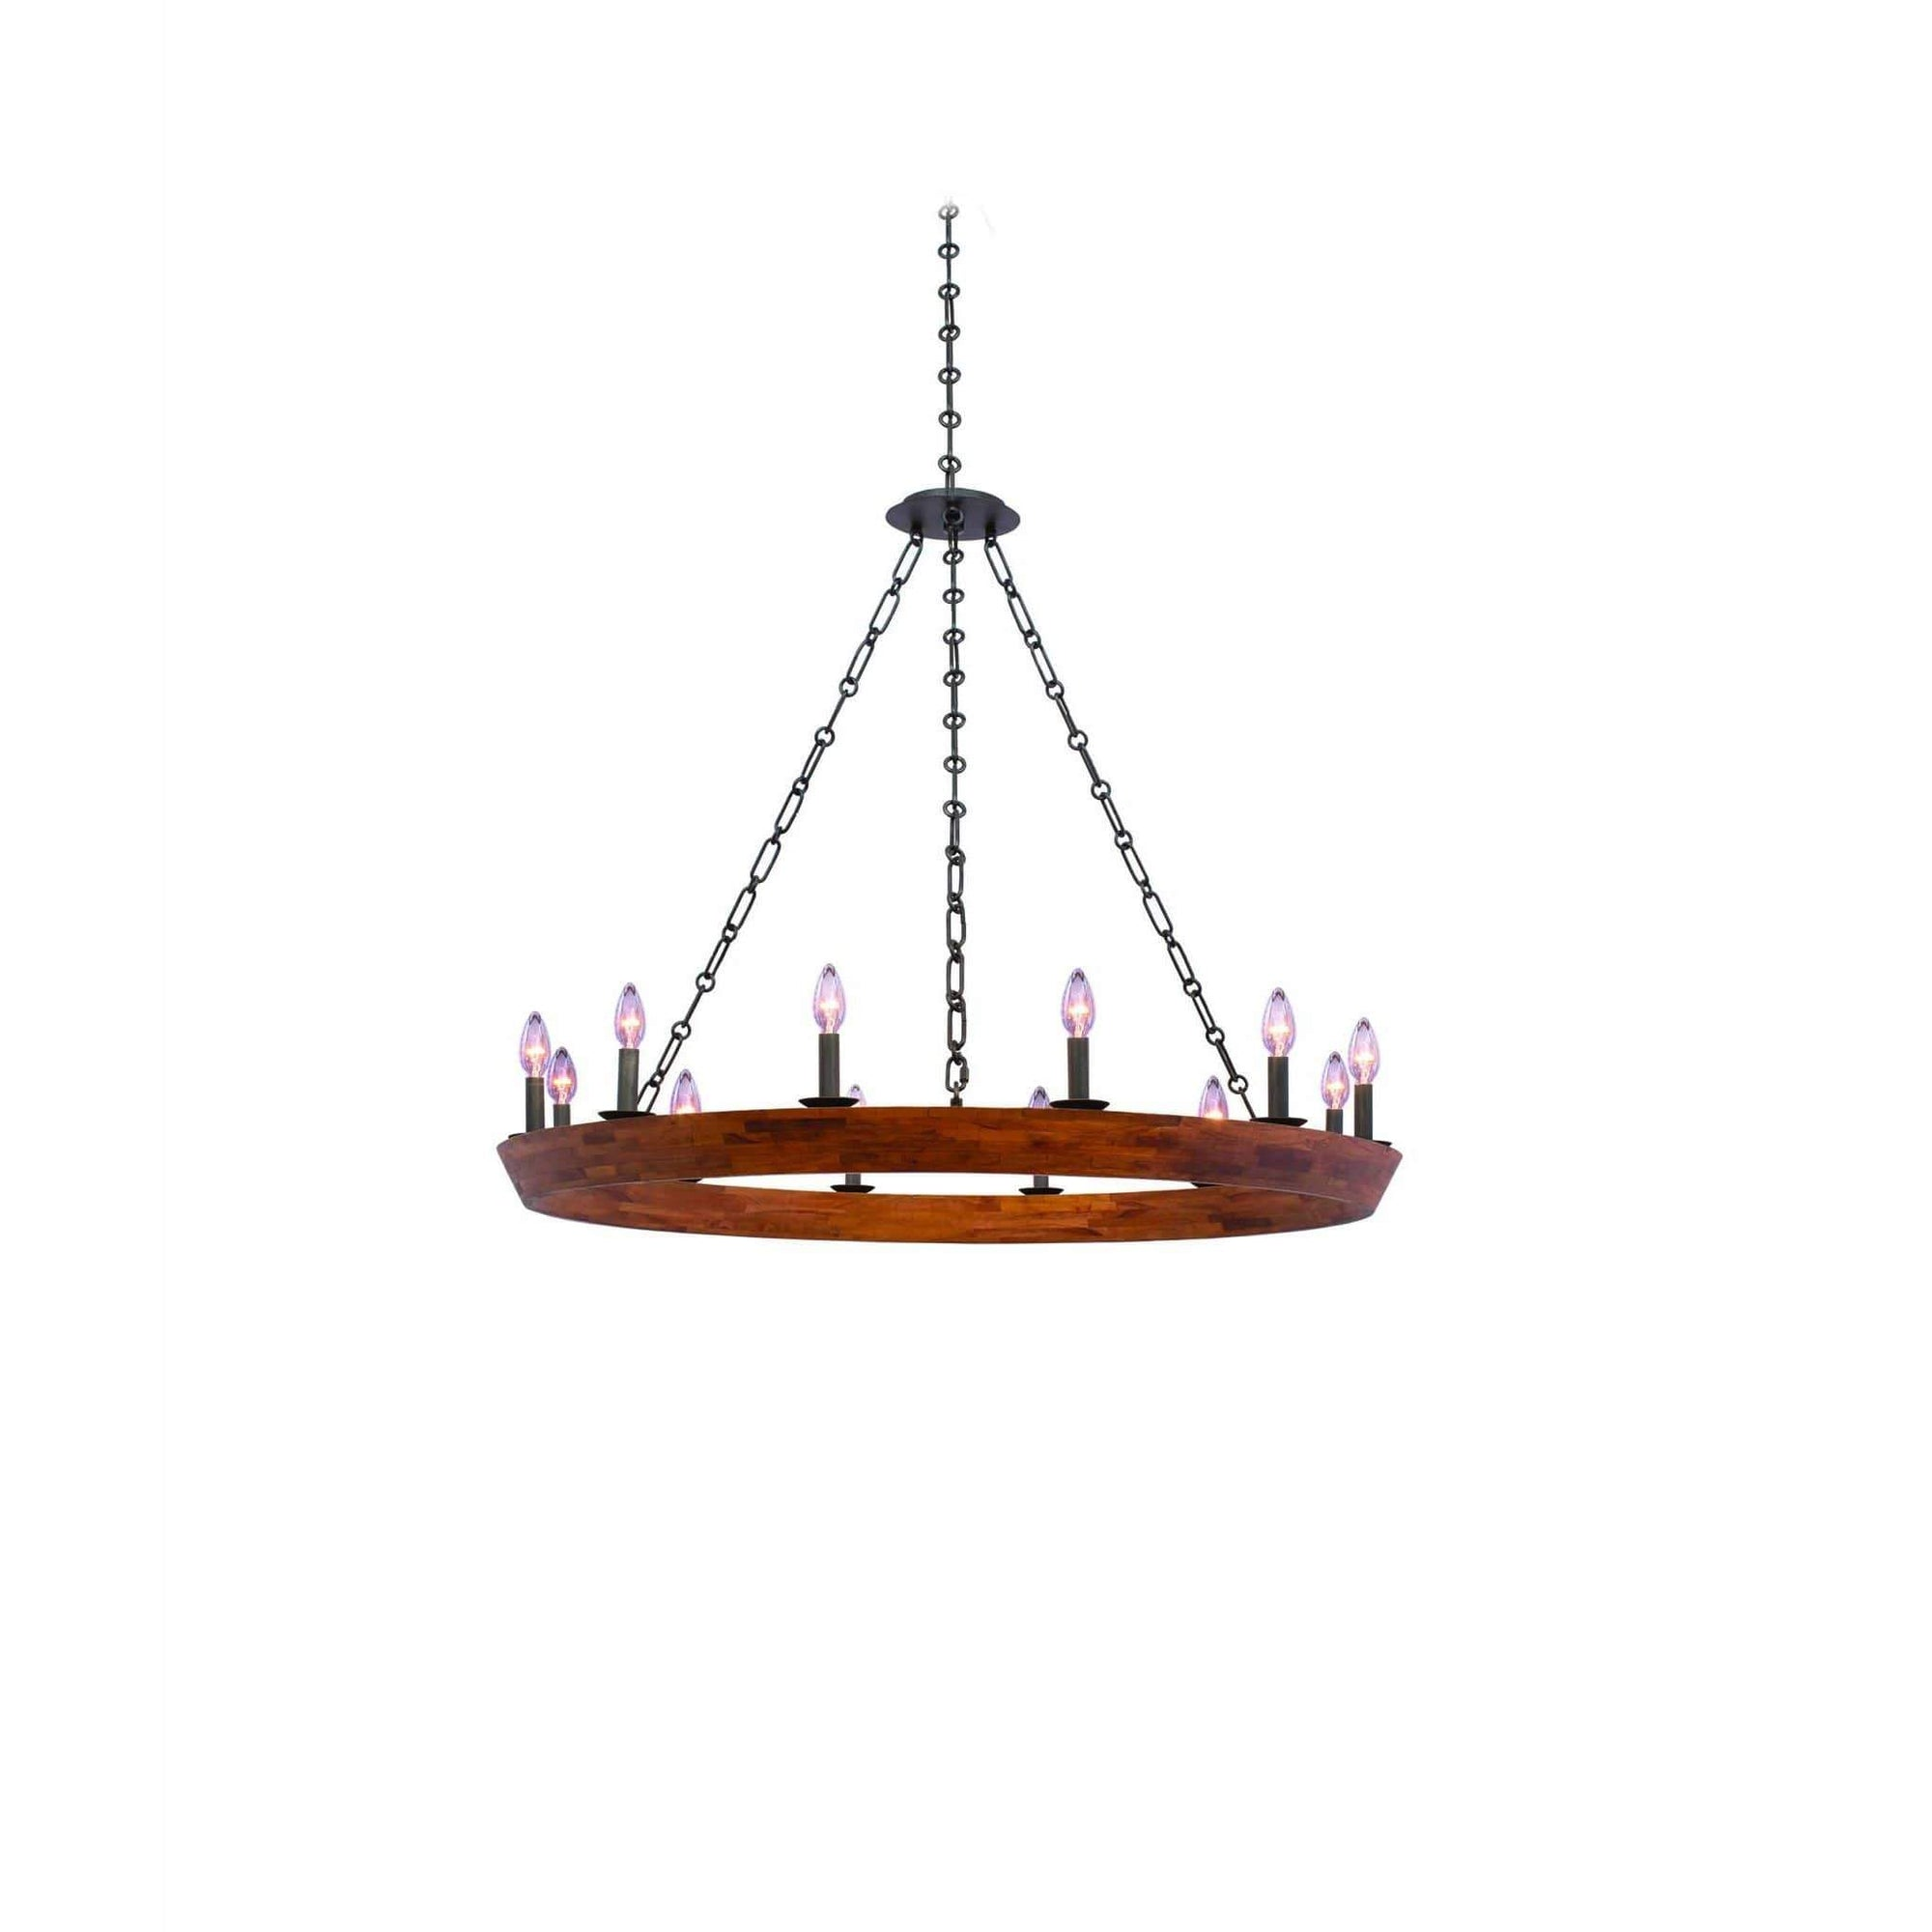 Kalco Lighting Chandeliers Black Iron Lansdale 12 Light Chandelier By Kalco Lighting 505552